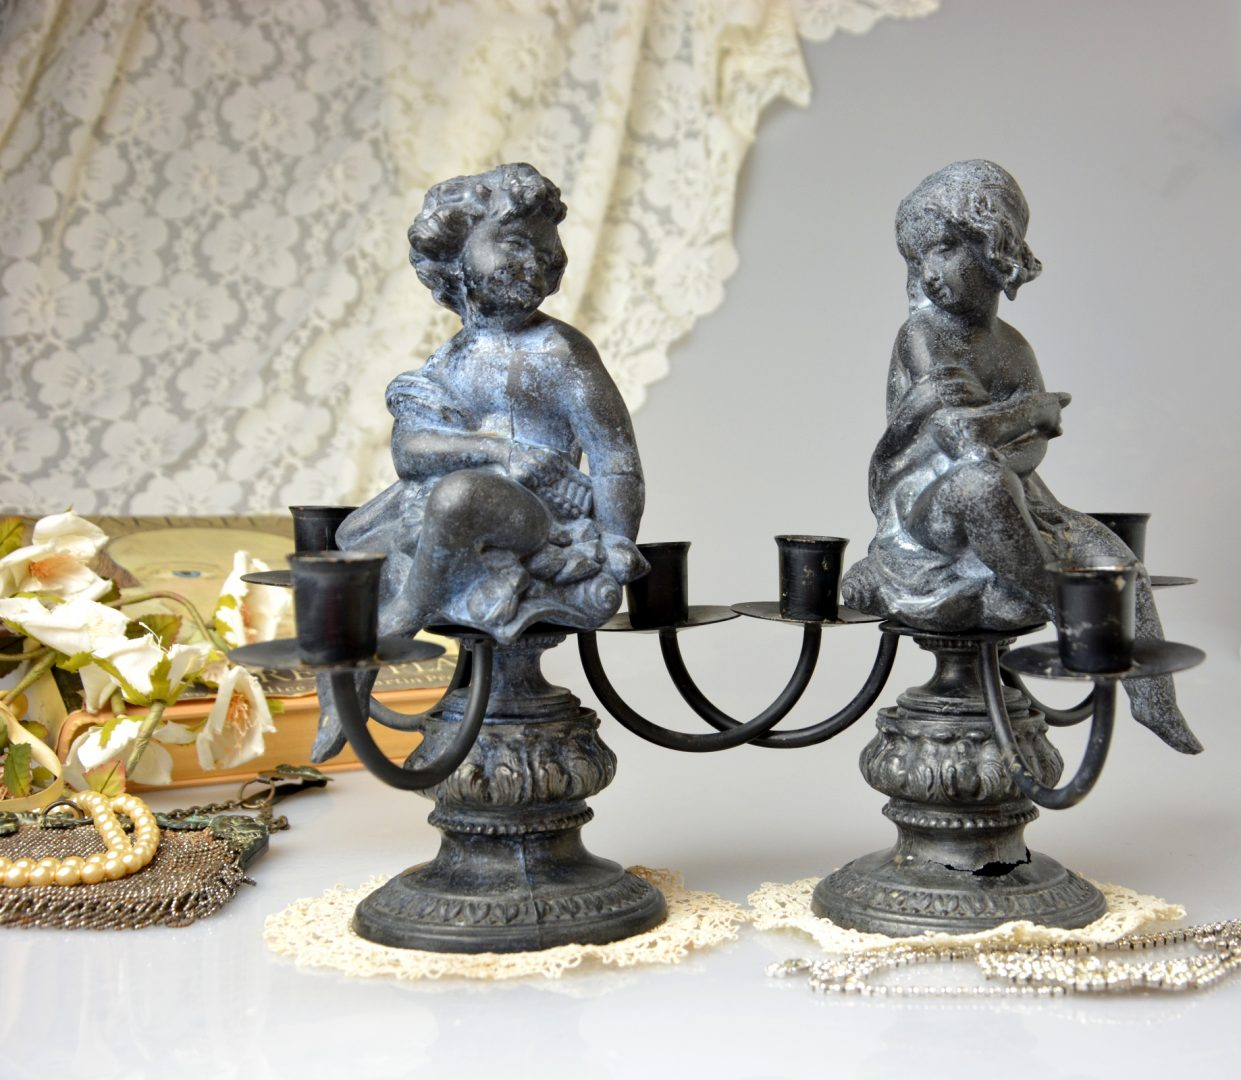 Auction id 233503 Iron Candelabras in Victorian Style Cottage French Chic Metal Candle Holder with Boy & Girl Figurine Shabby Chic Romantic Home Decor